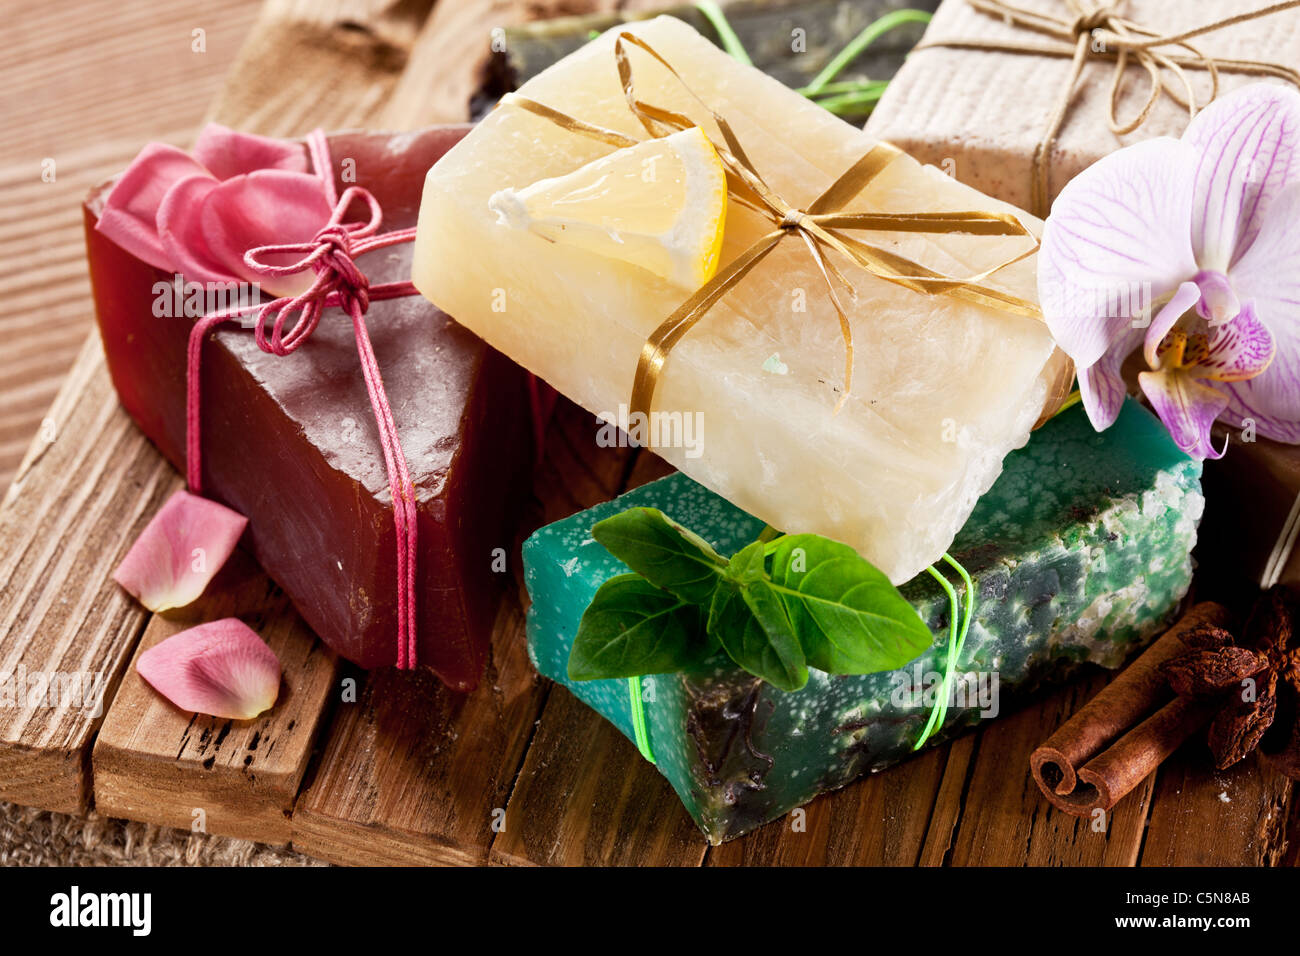 Pieces of natural soap on the wood desk. - Stock Image